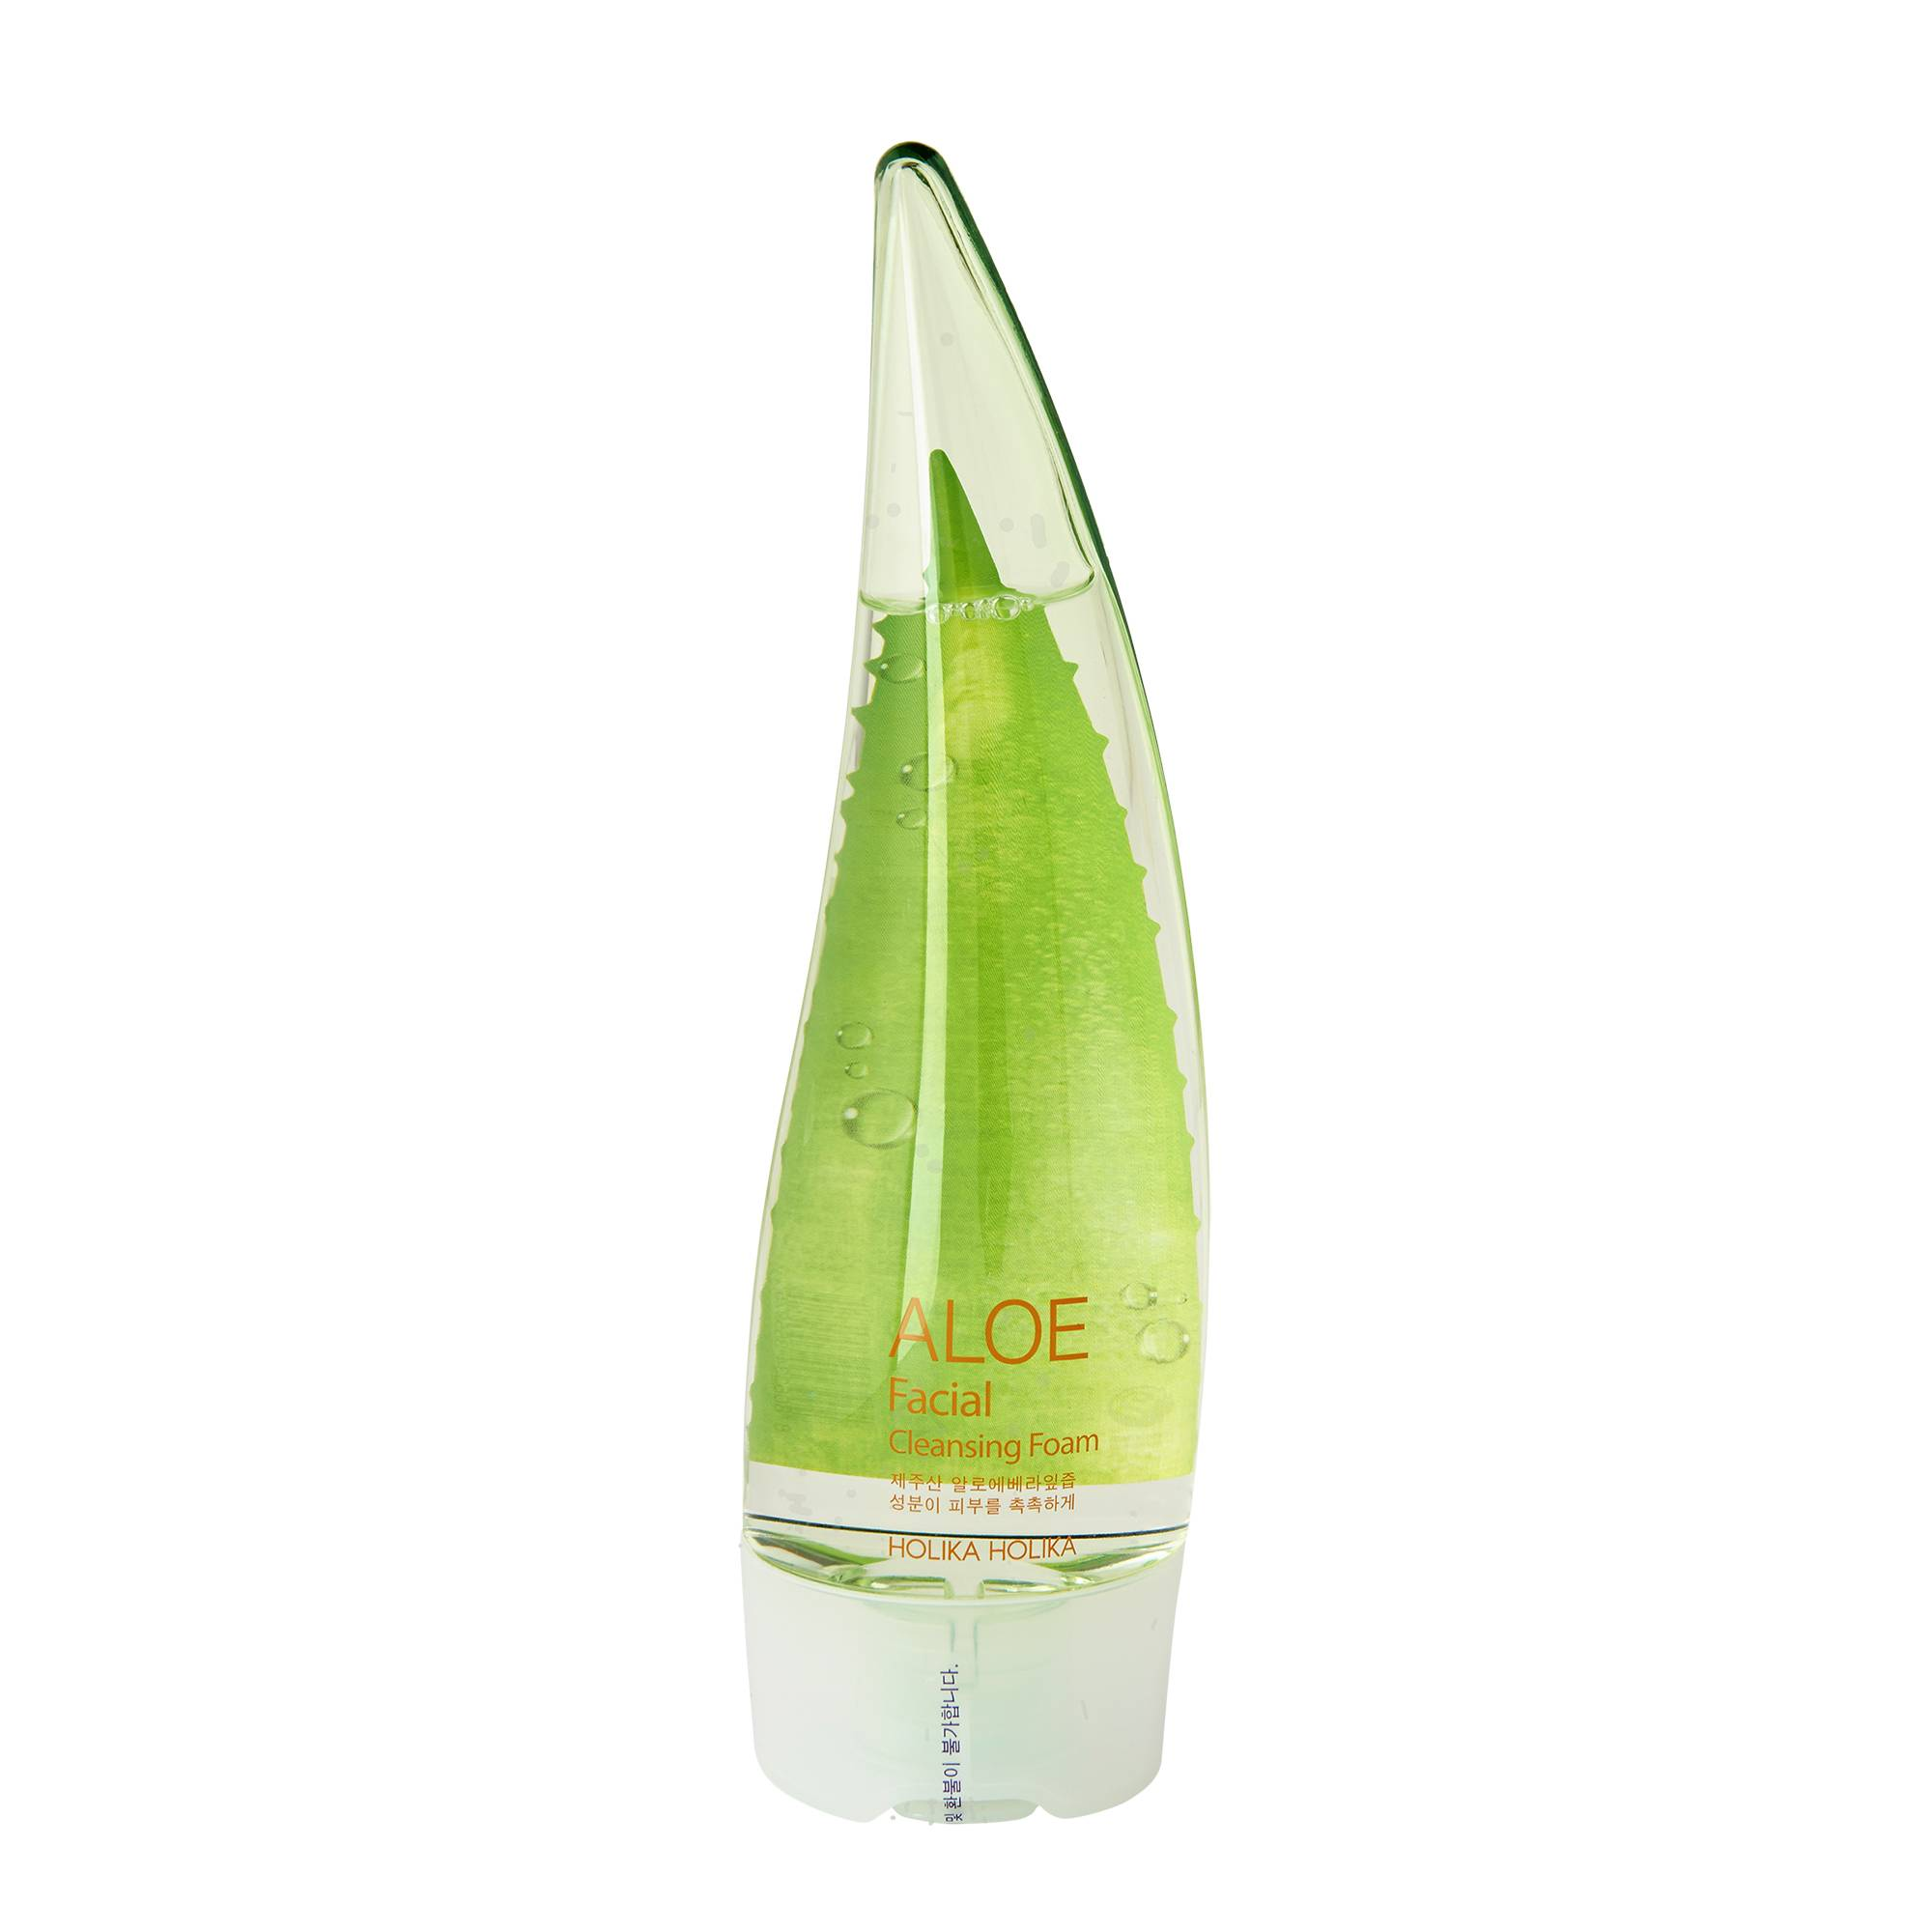 Holika Holika Aloe Cleansing Foam 150ml